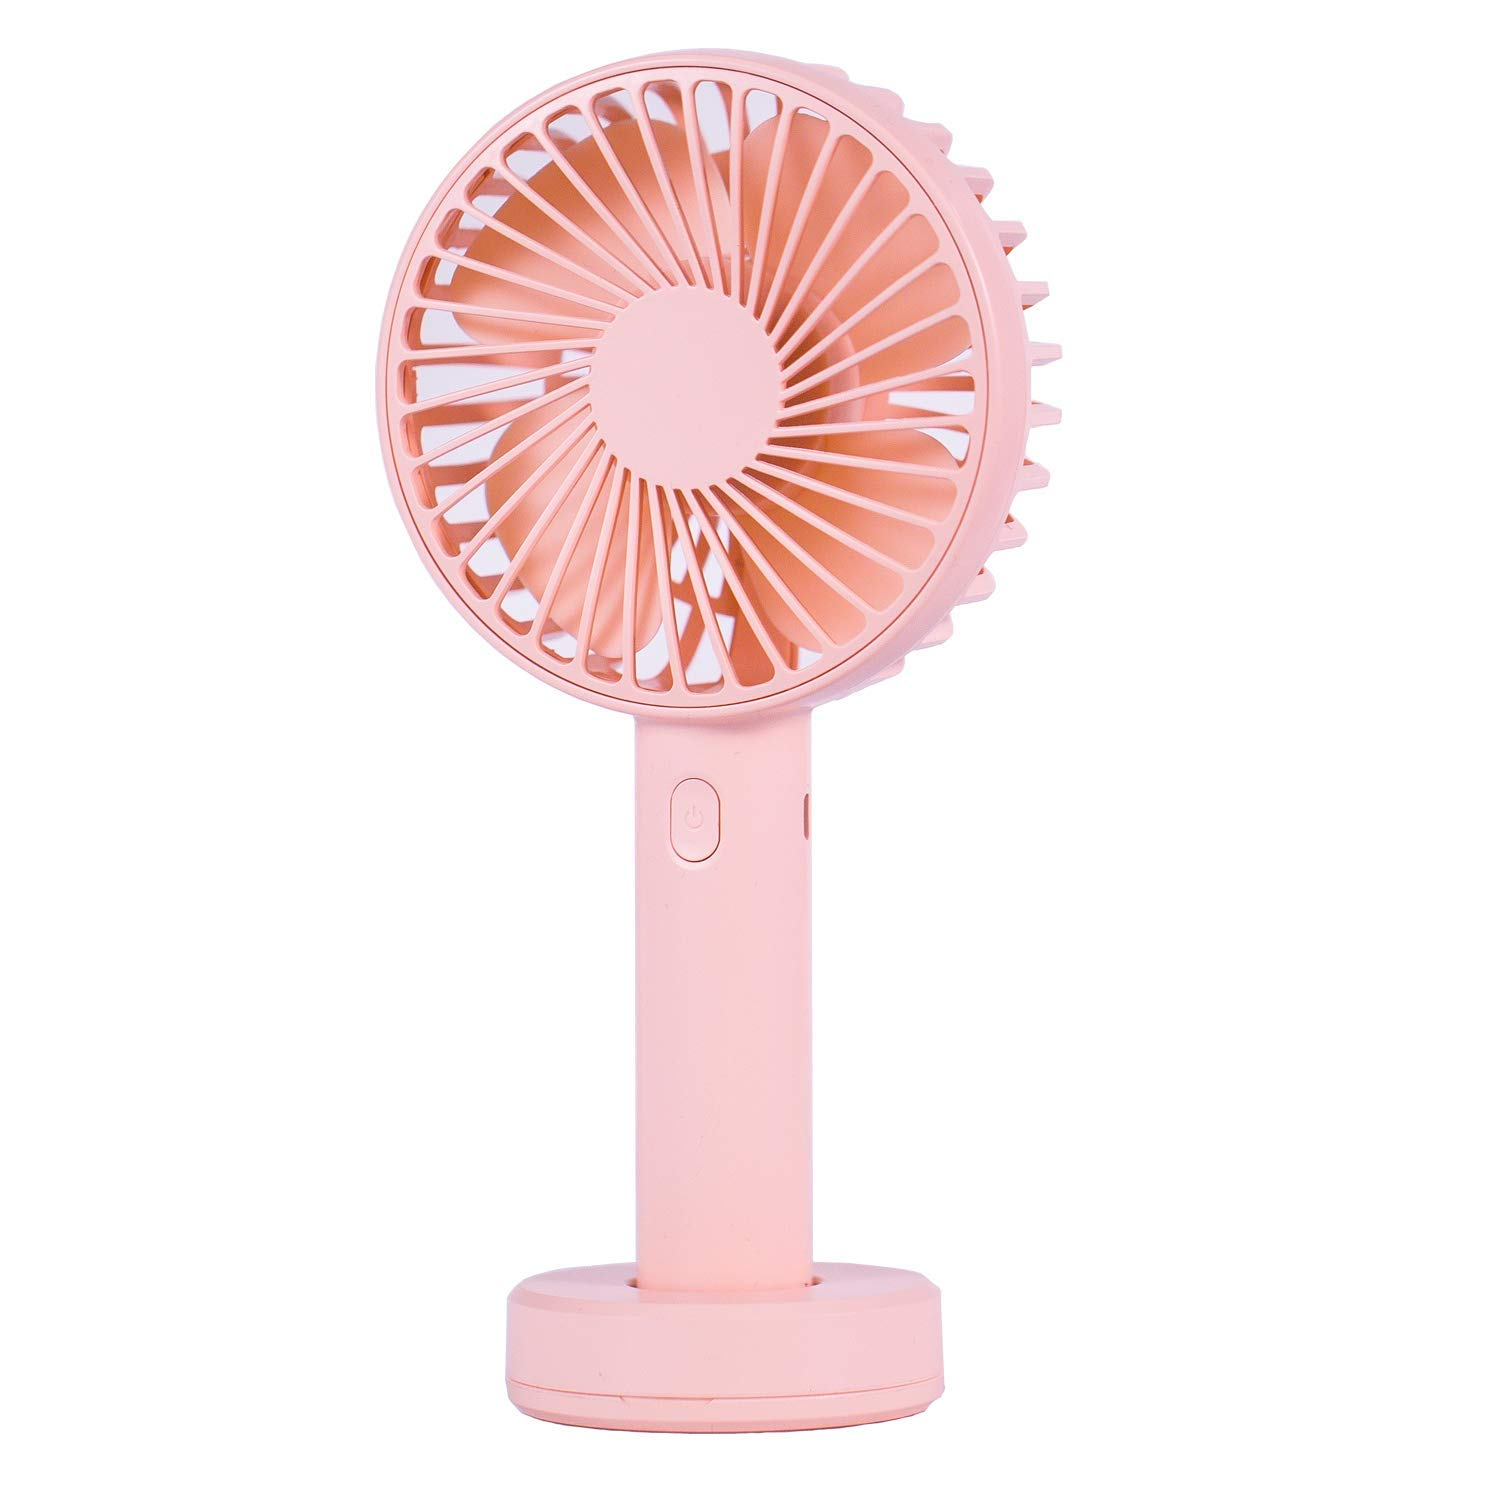 Portable Handheld Fan, Personal Small Mini Cooling USB Fan with Rechargeable Battery Operated for Desktop Home Outdoor Travel Light Pink